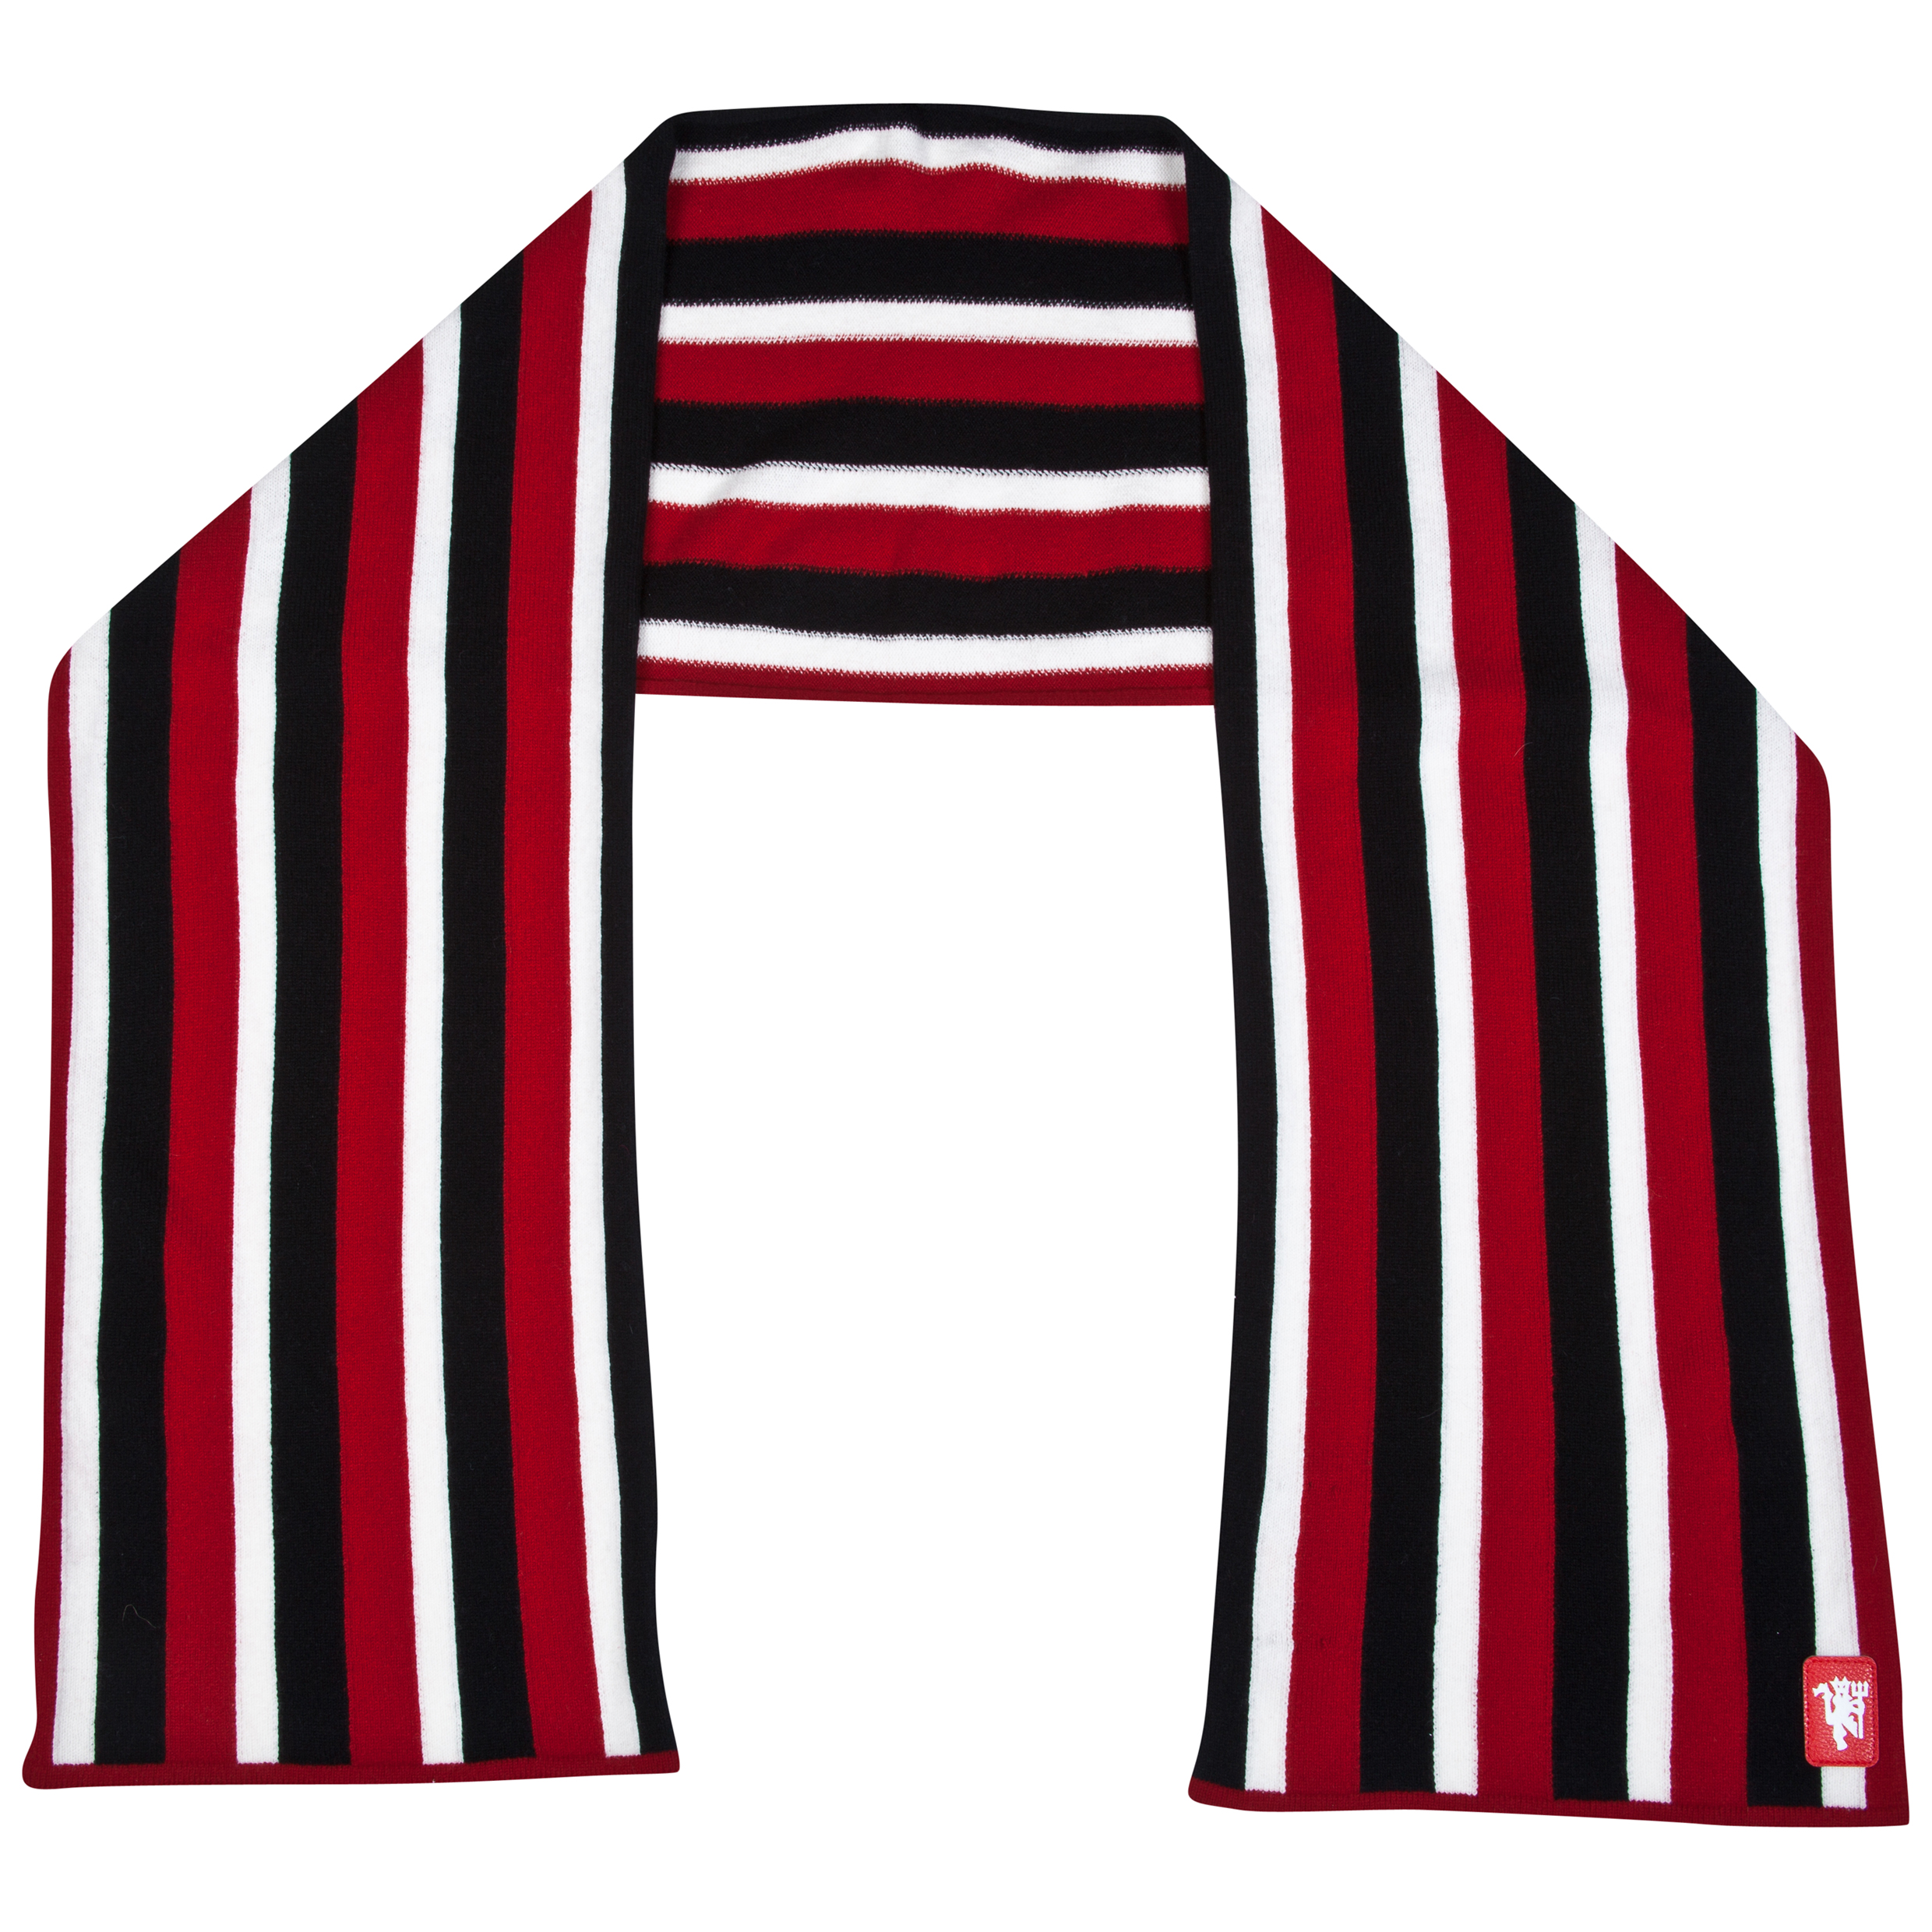 Manchester United MUFC Lambs Str Scarf - A Multi